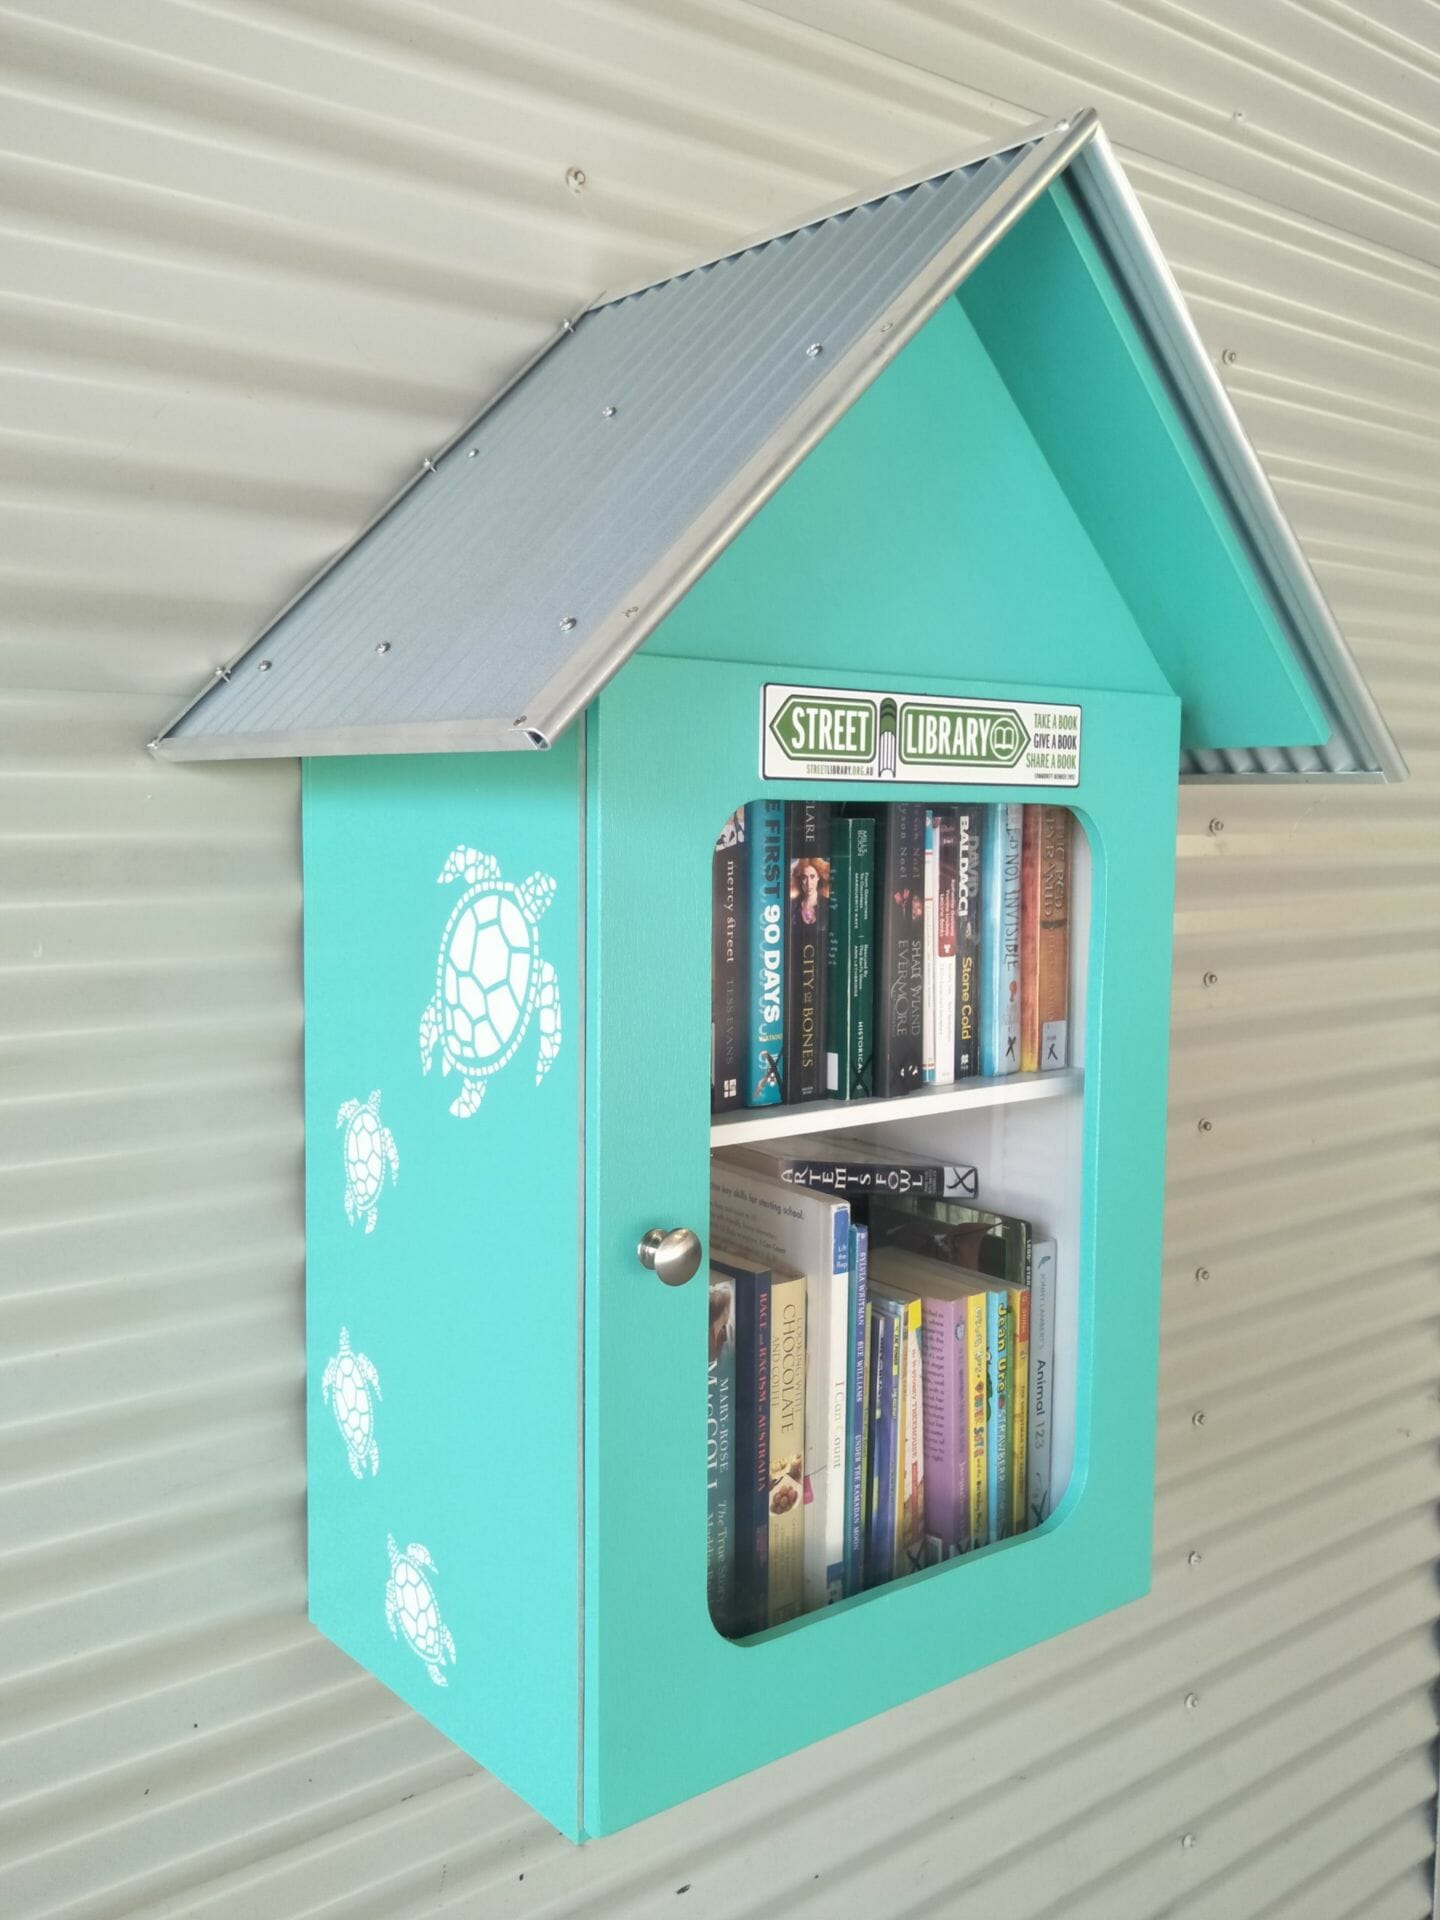 Point Lookout Little Library